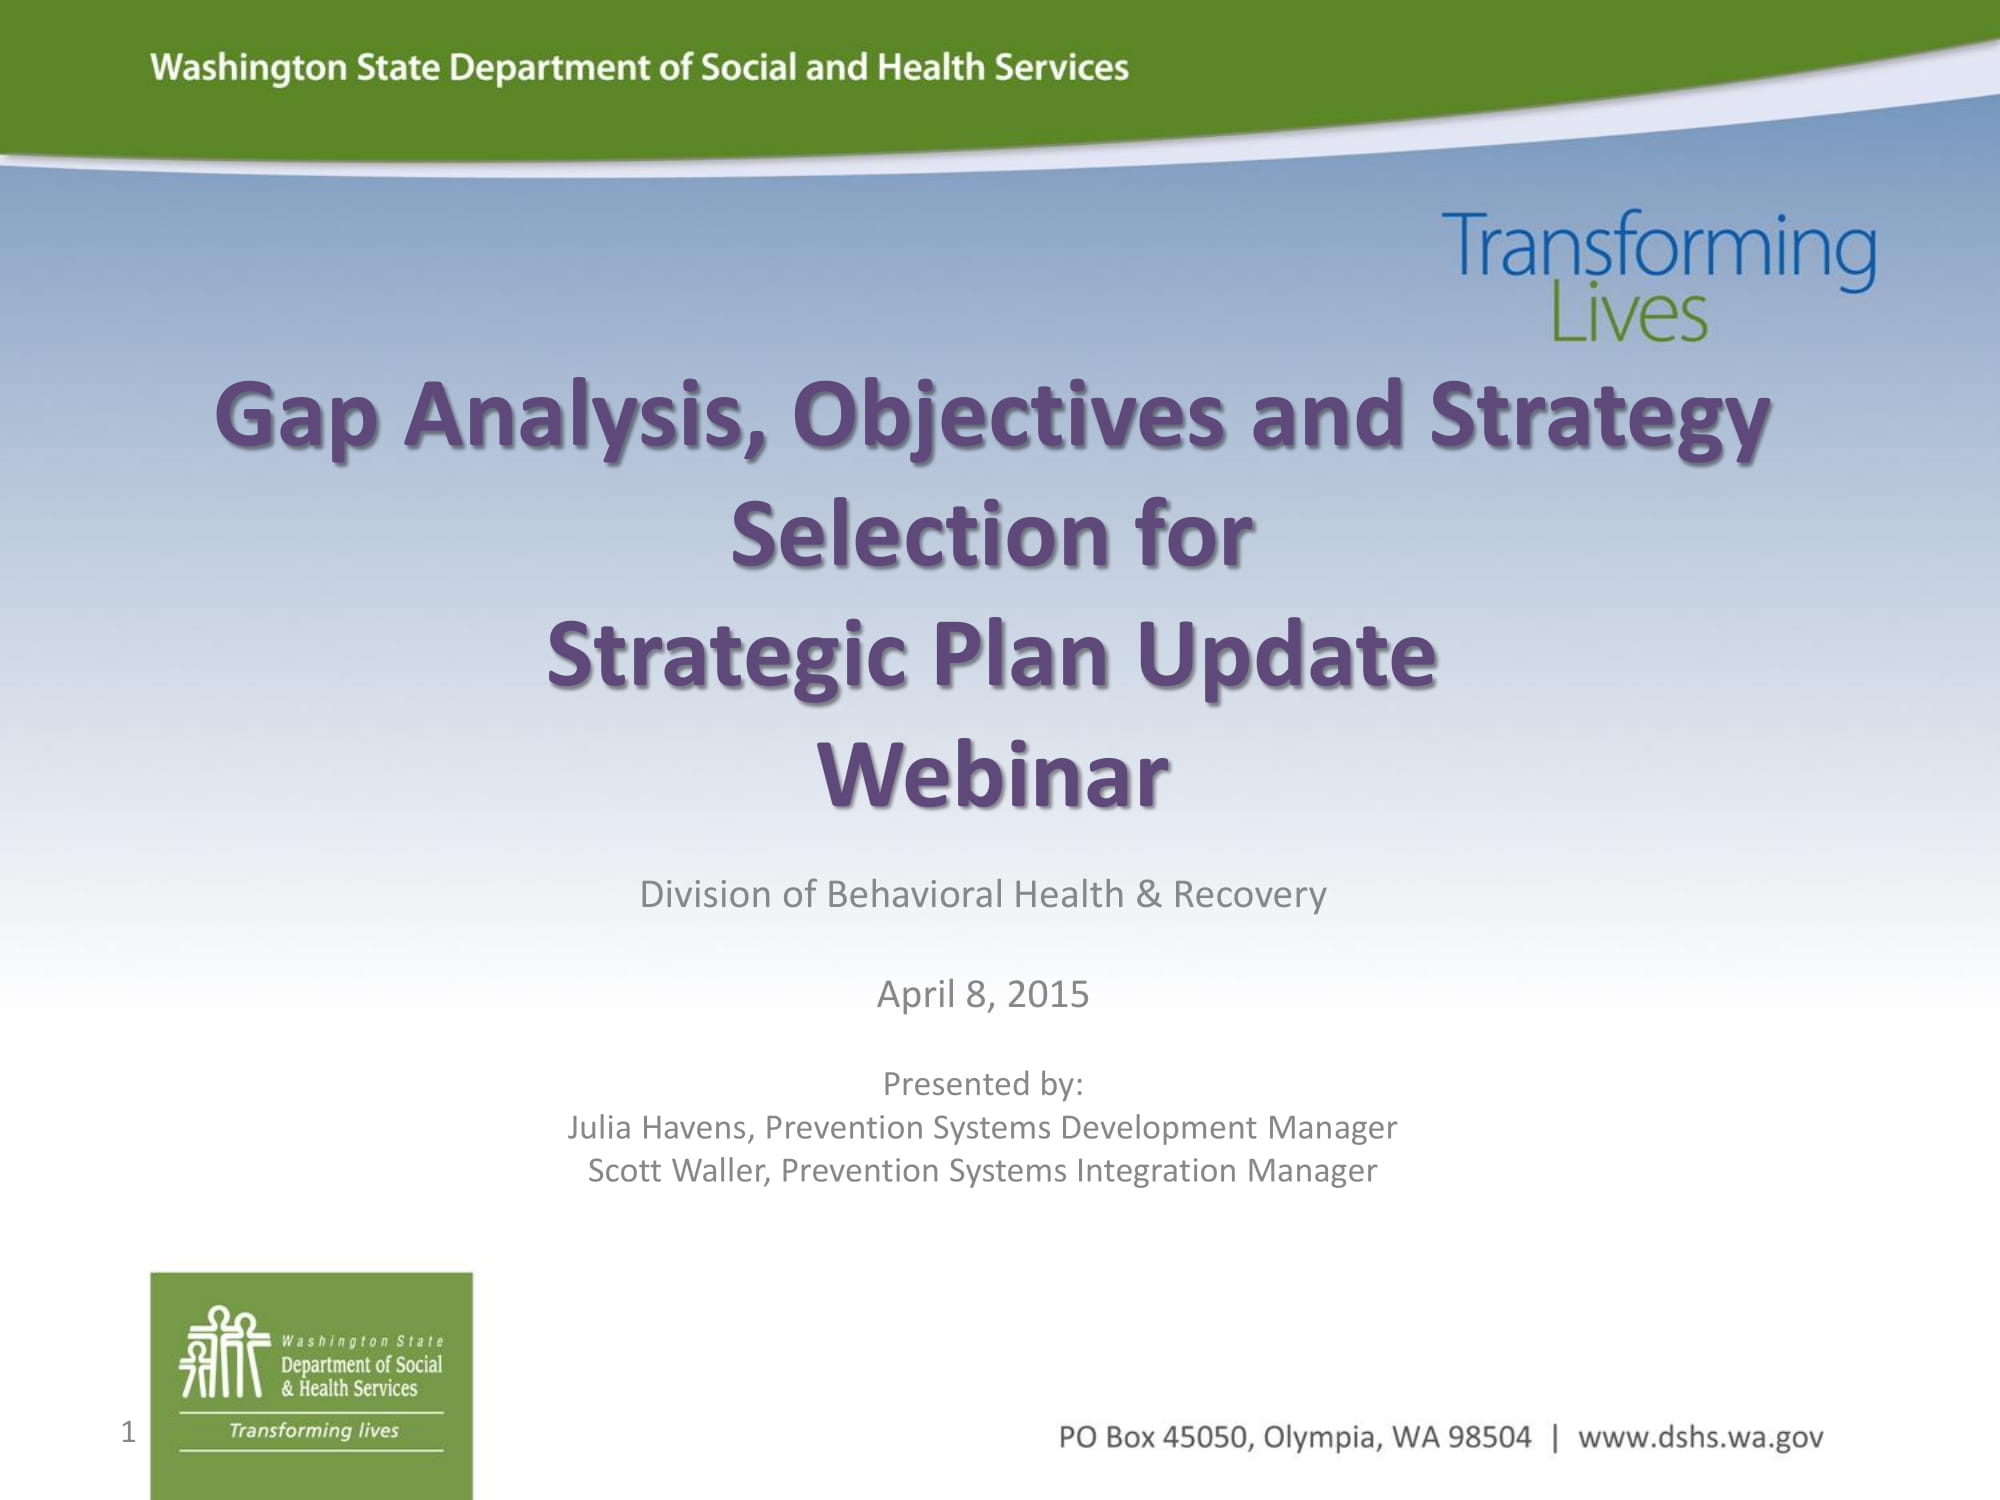 gap analysis webinar slides